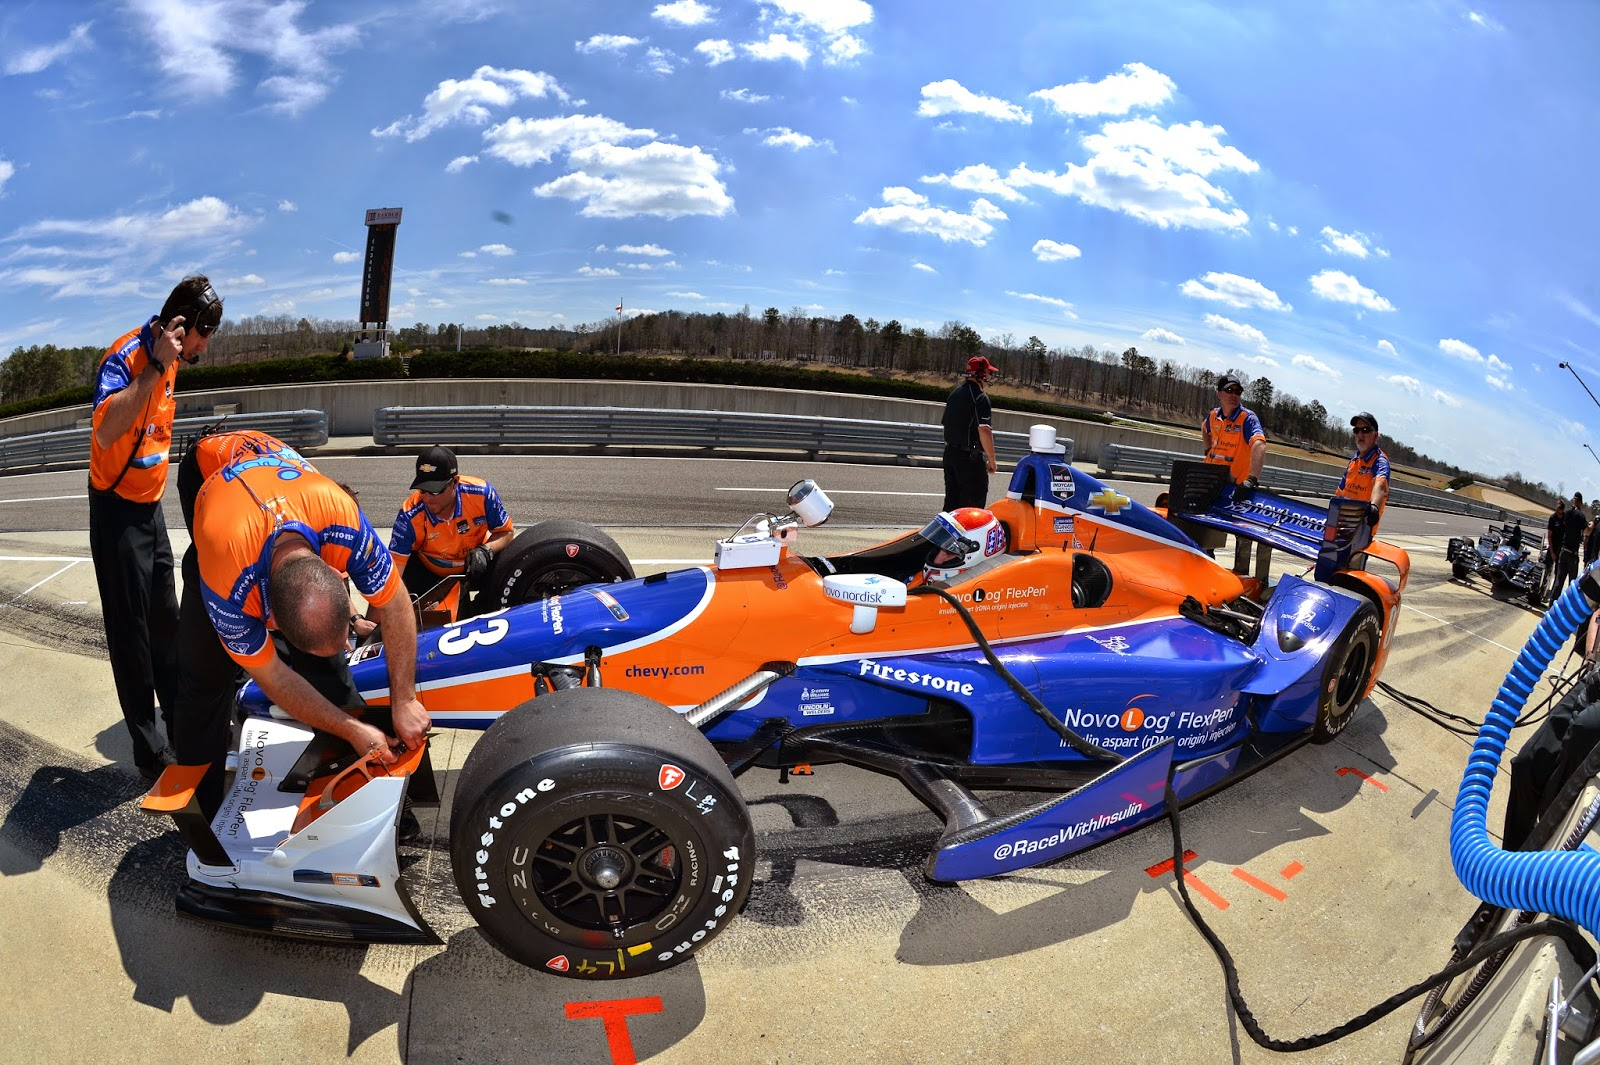 Kimball in pits, with the pit crew working on the front wing.